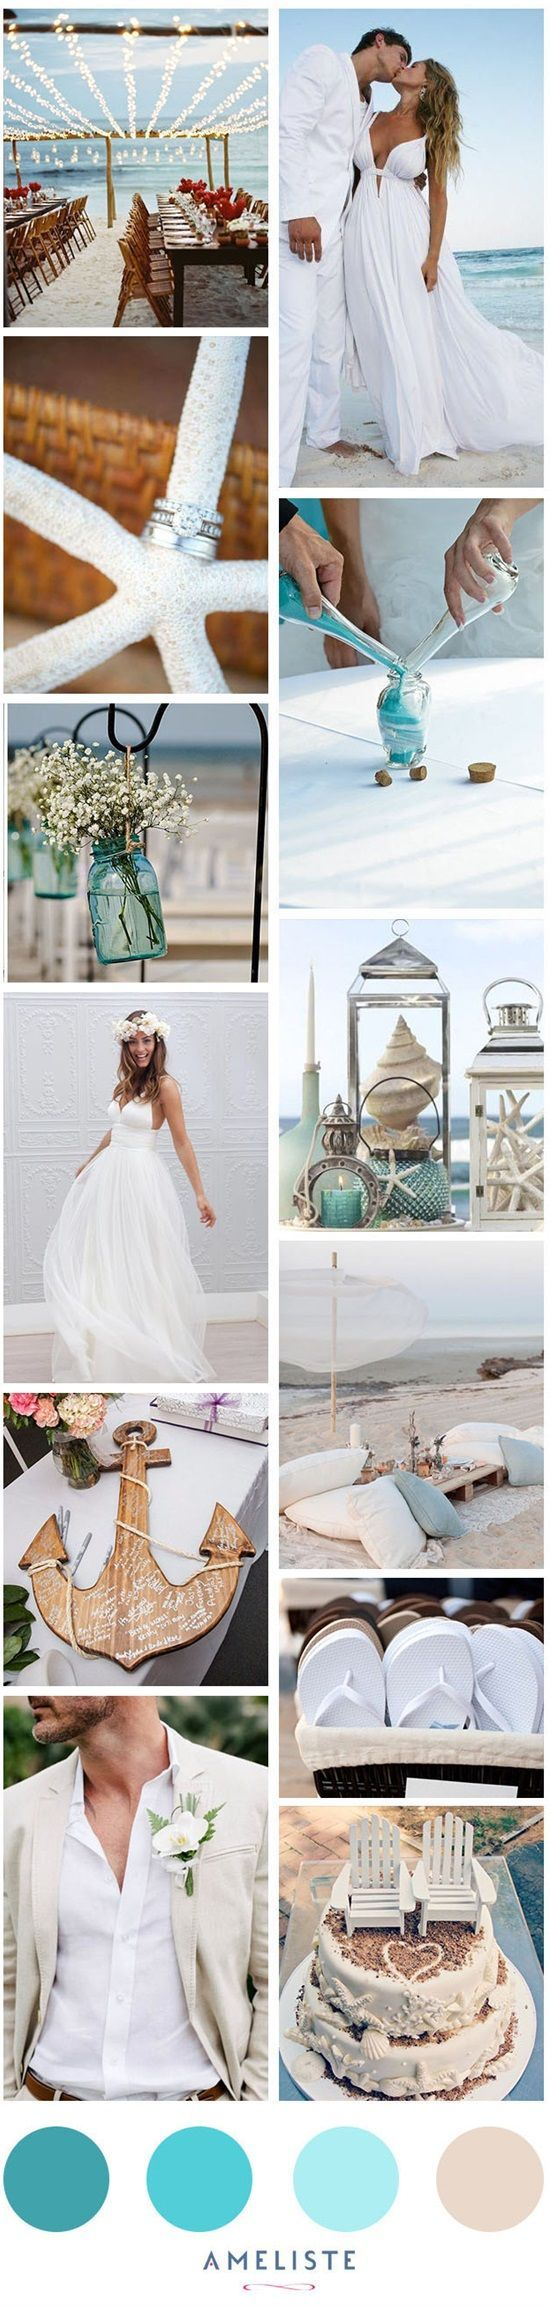 3073 best Themes For Your Wedding images on Pinterest | Wedding ...